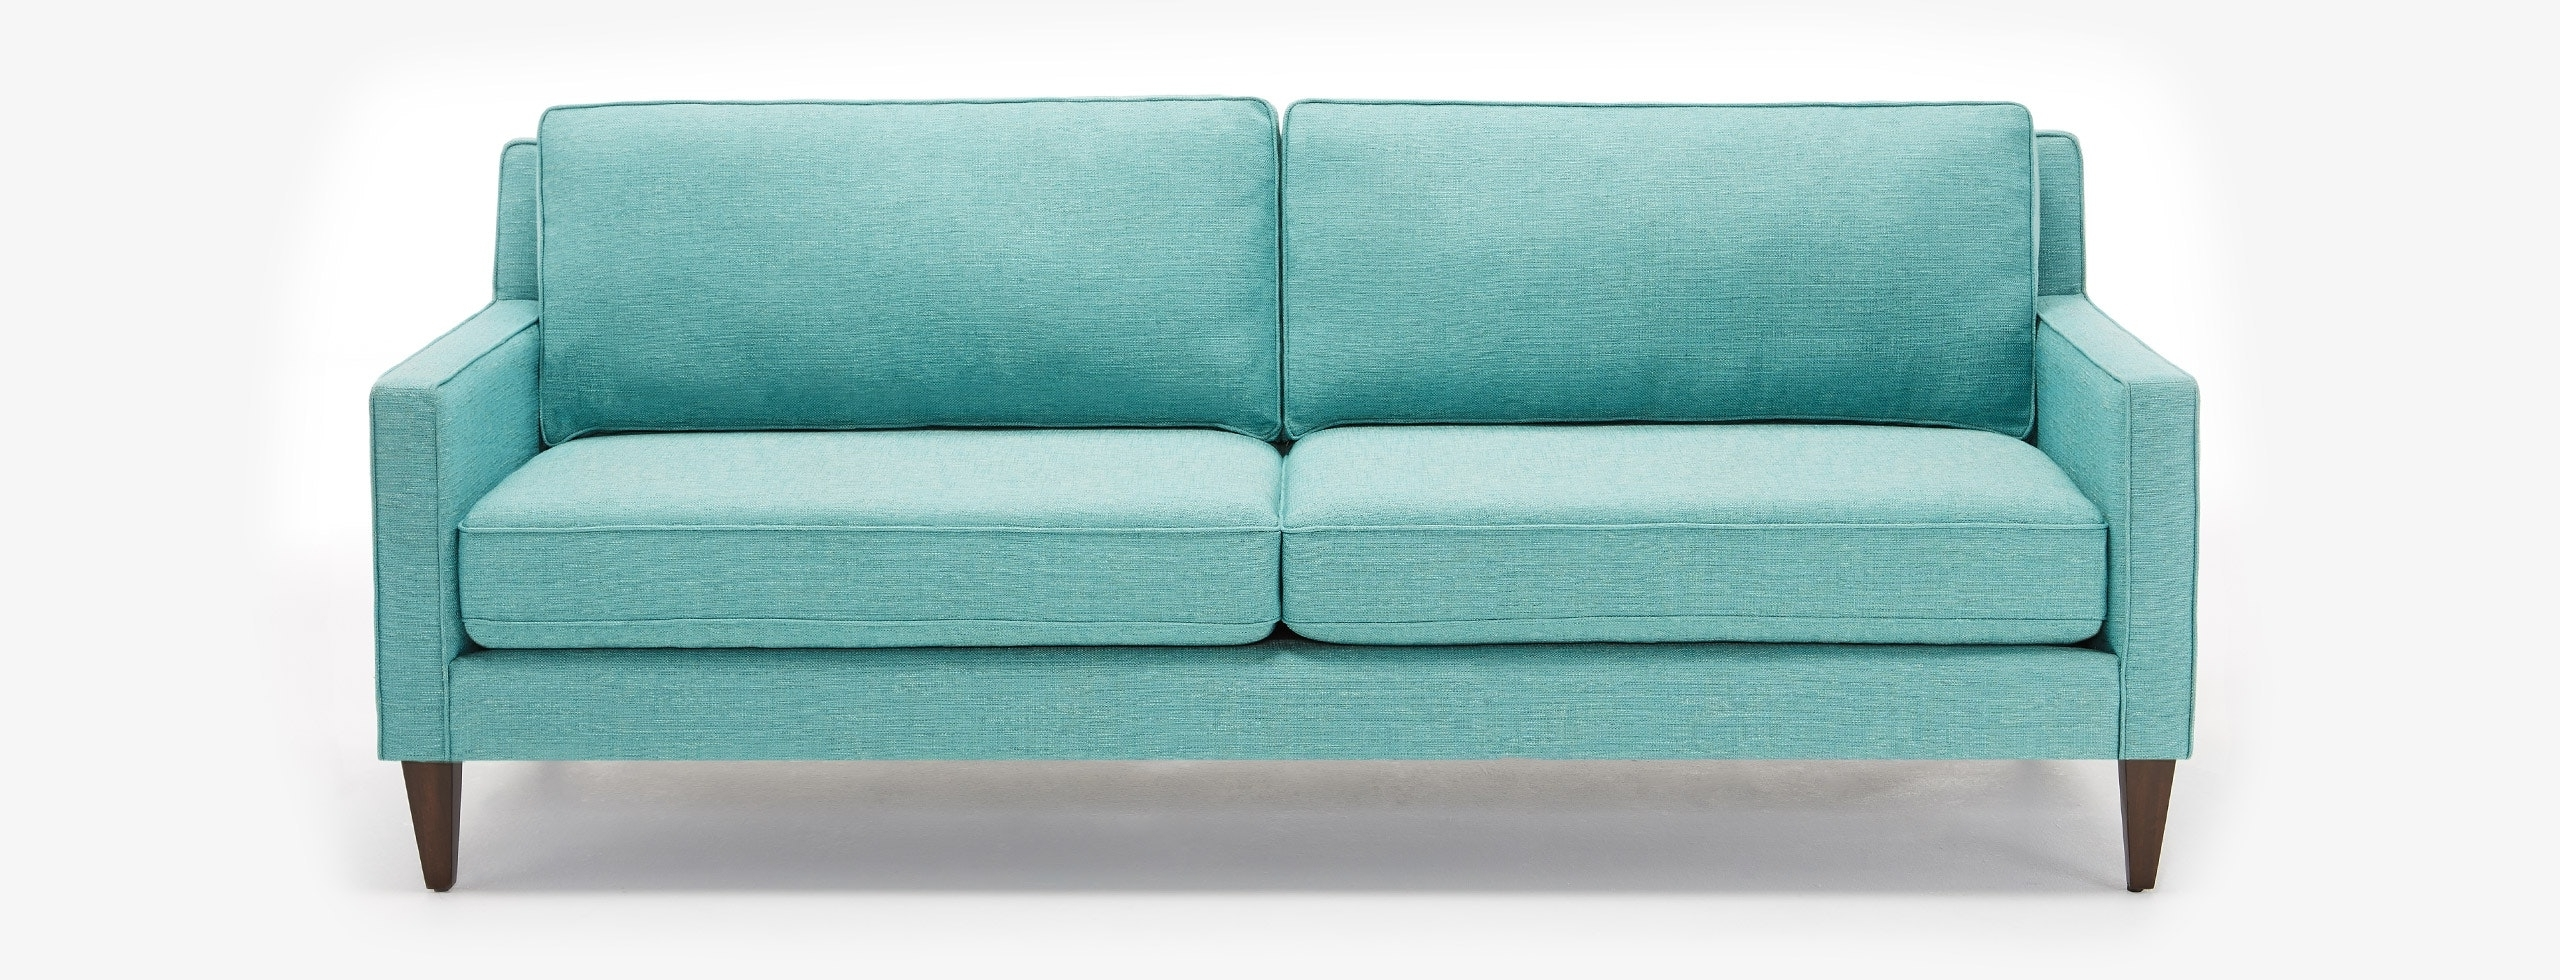 Joybird Intended For Trendy Aqua Sofas (View 12 of 20)